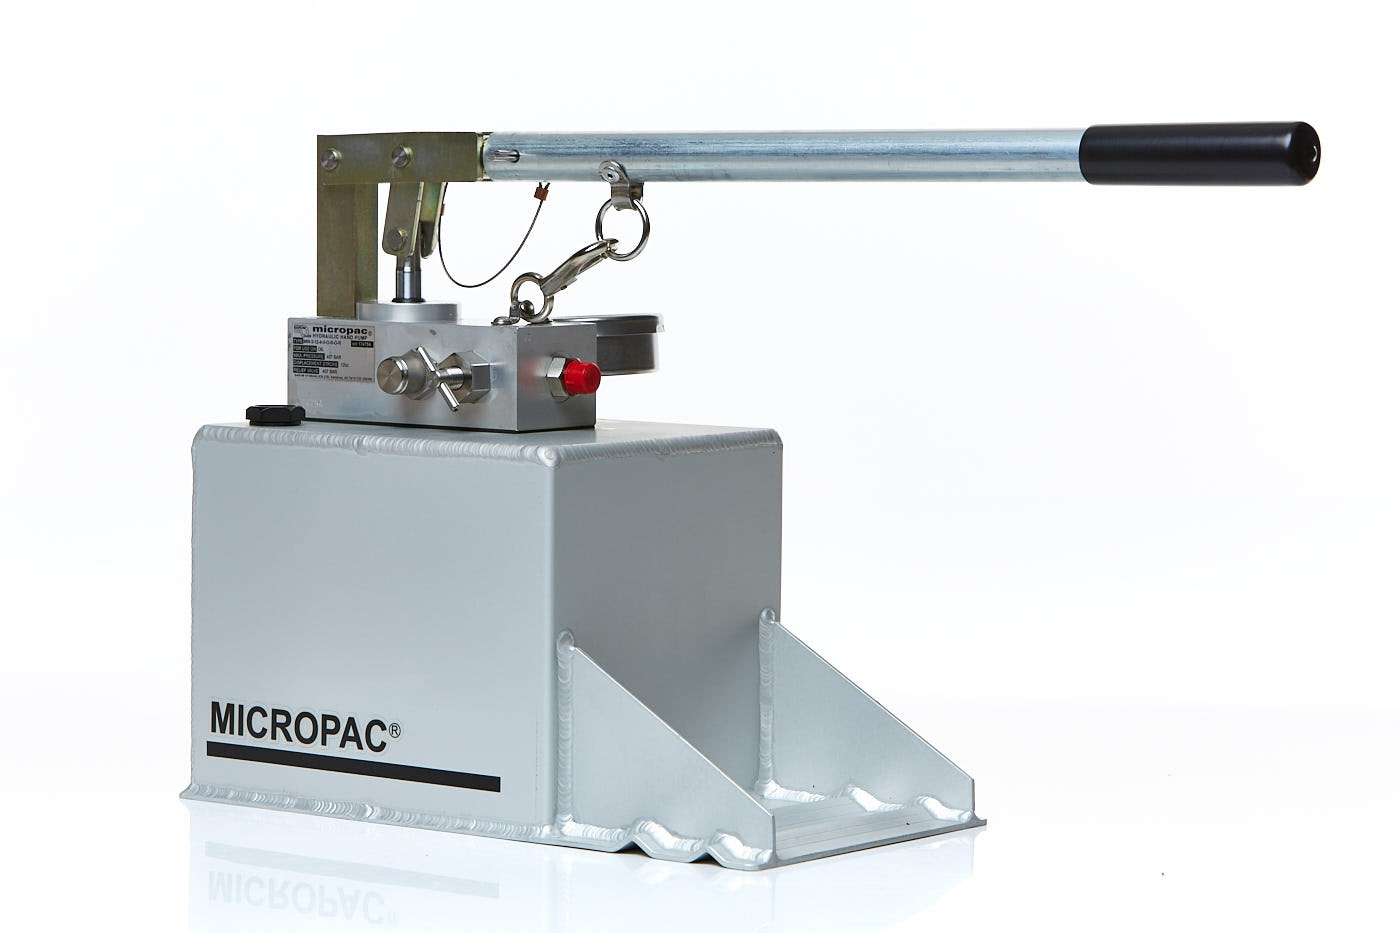 Micropac hydrotest pump